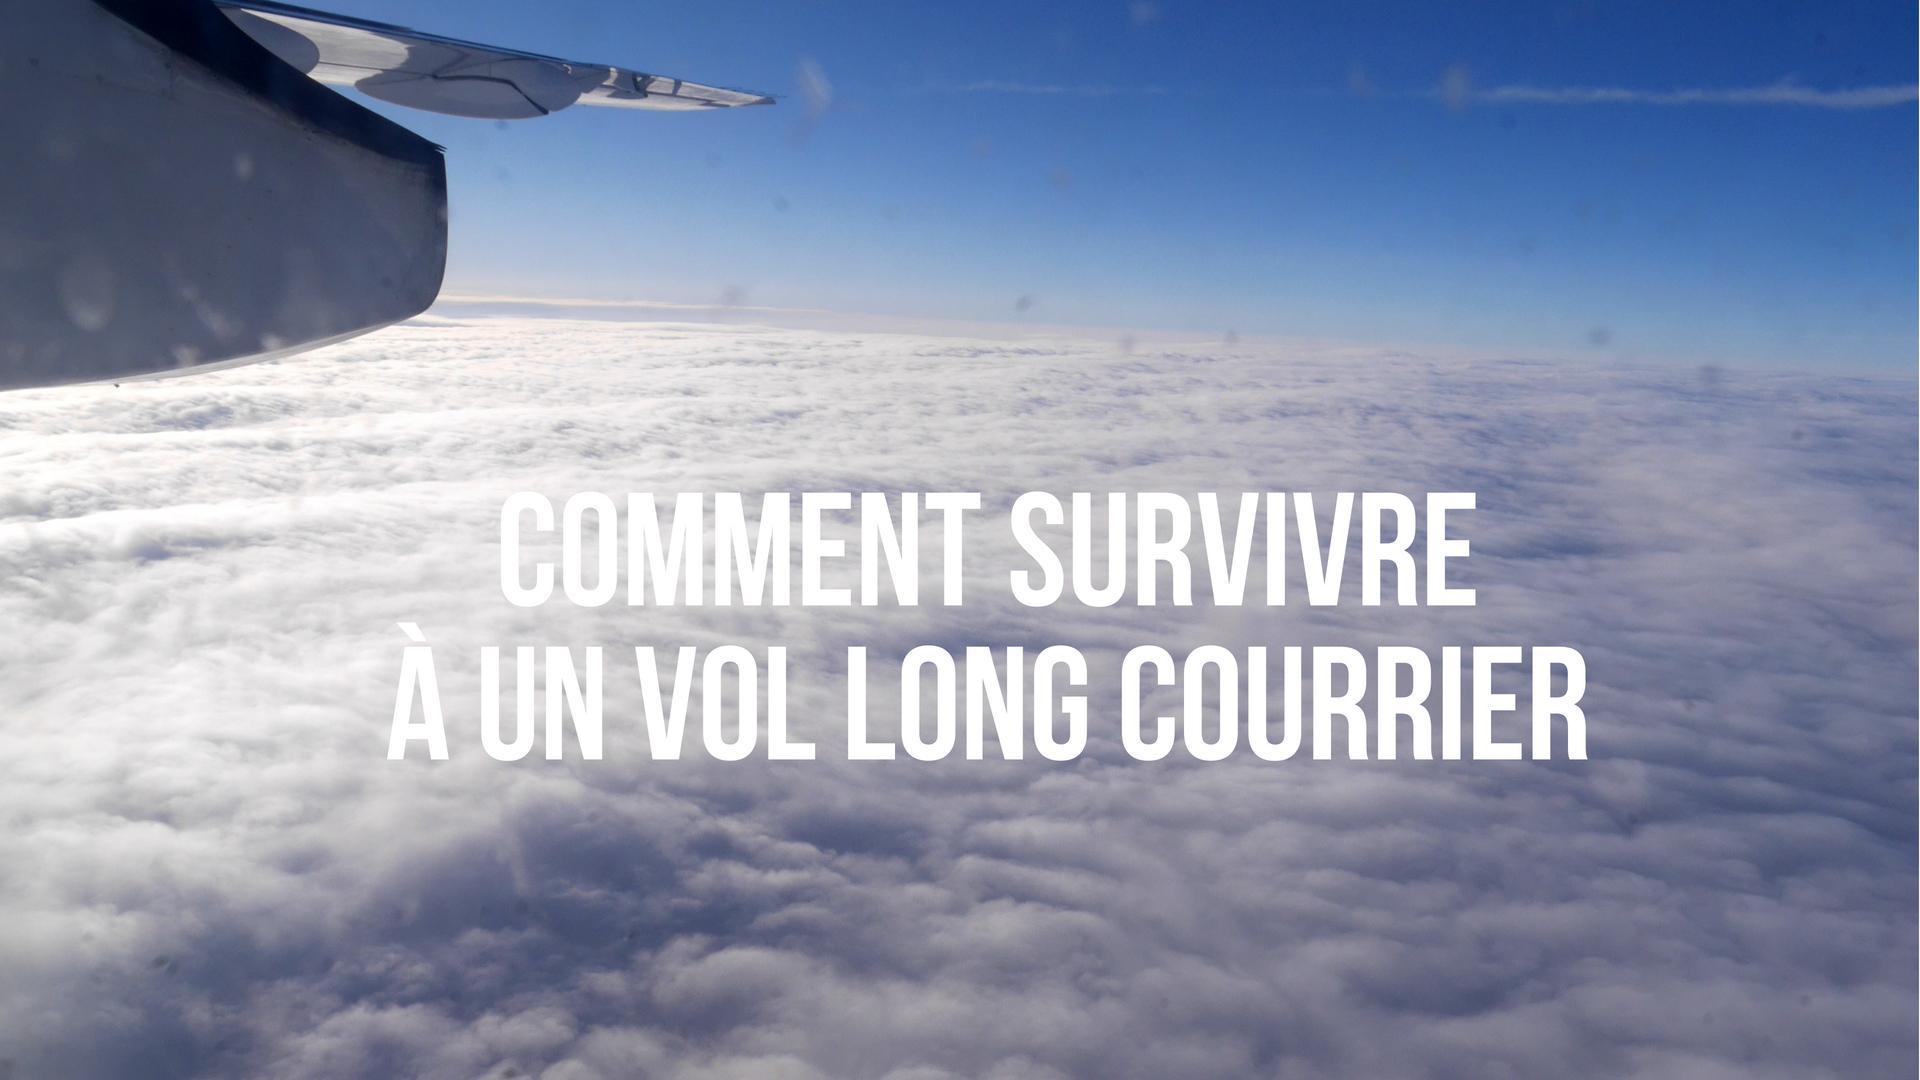 vol long courrier voyage arpenter le chemin